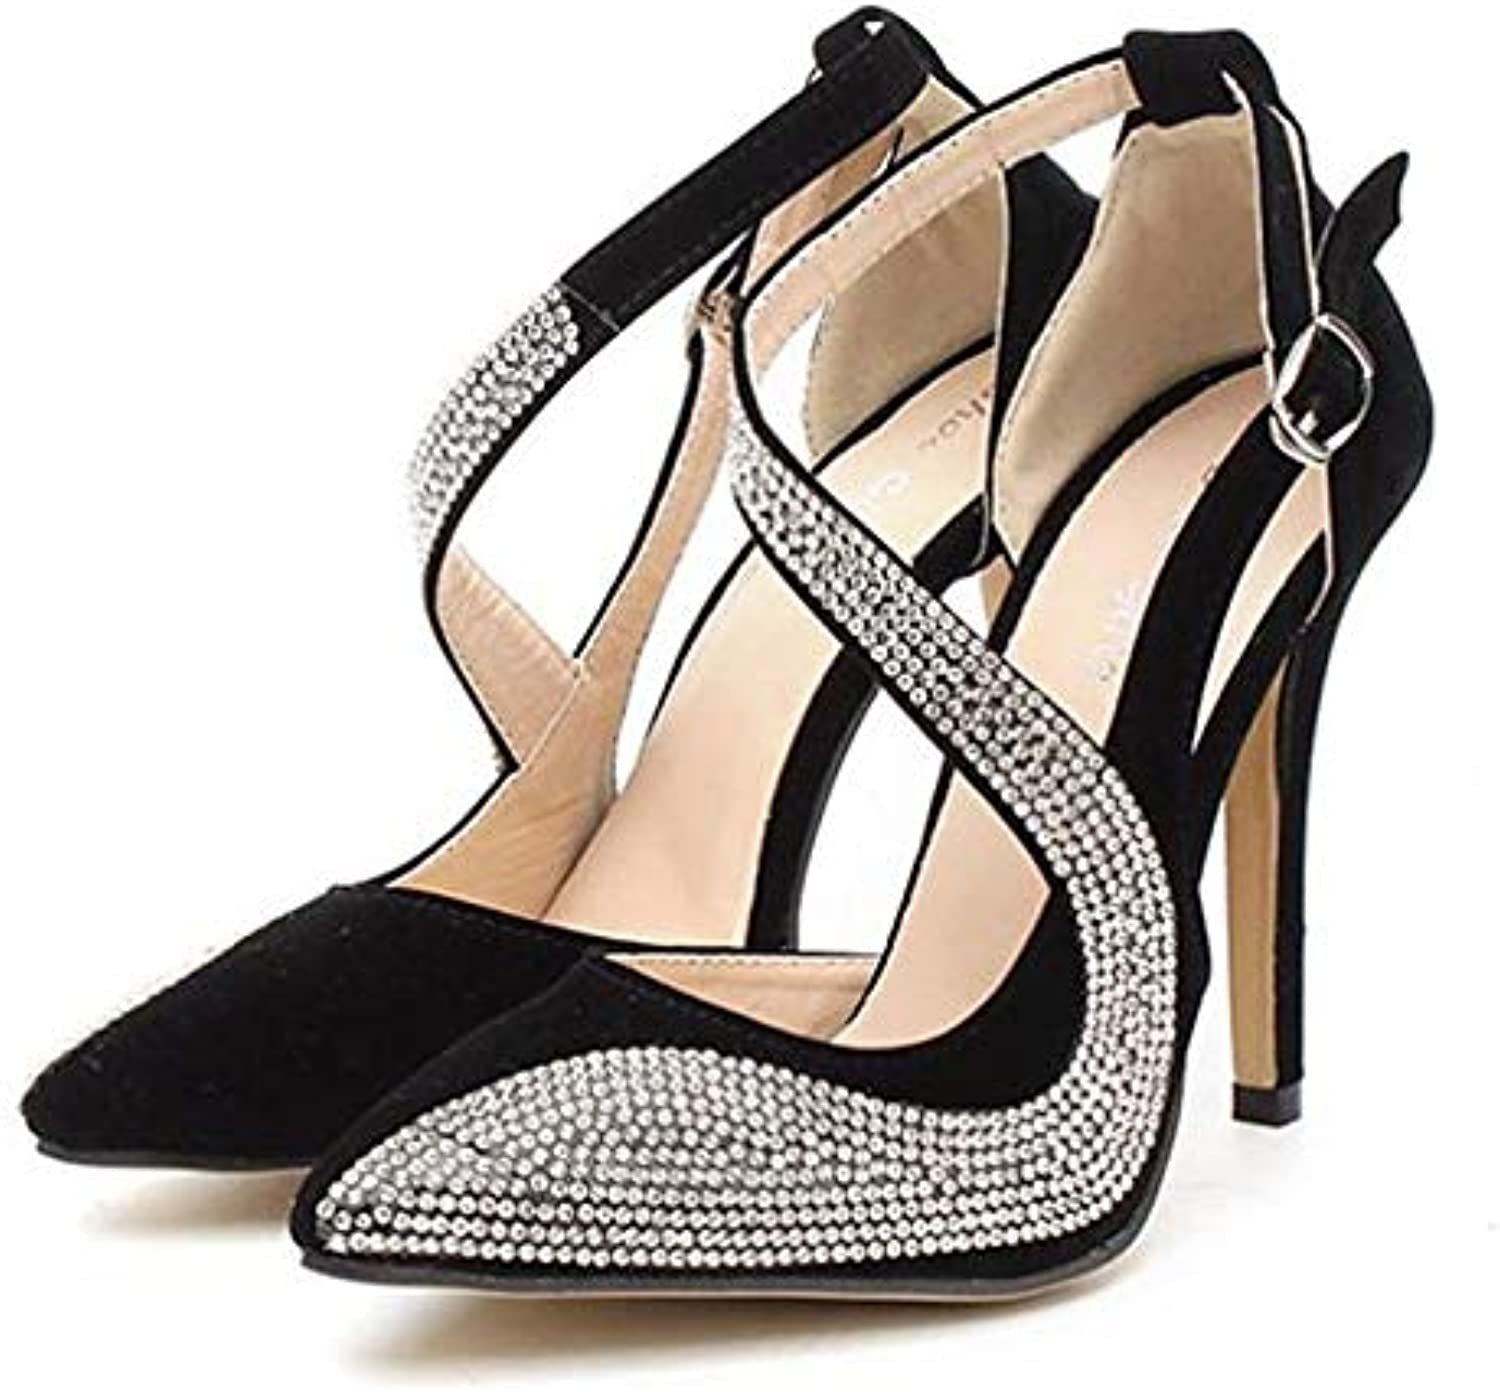 Bvilage High-Heeled Sweet Pointed High-Heeled shoes with Fine Rhinestones for Women